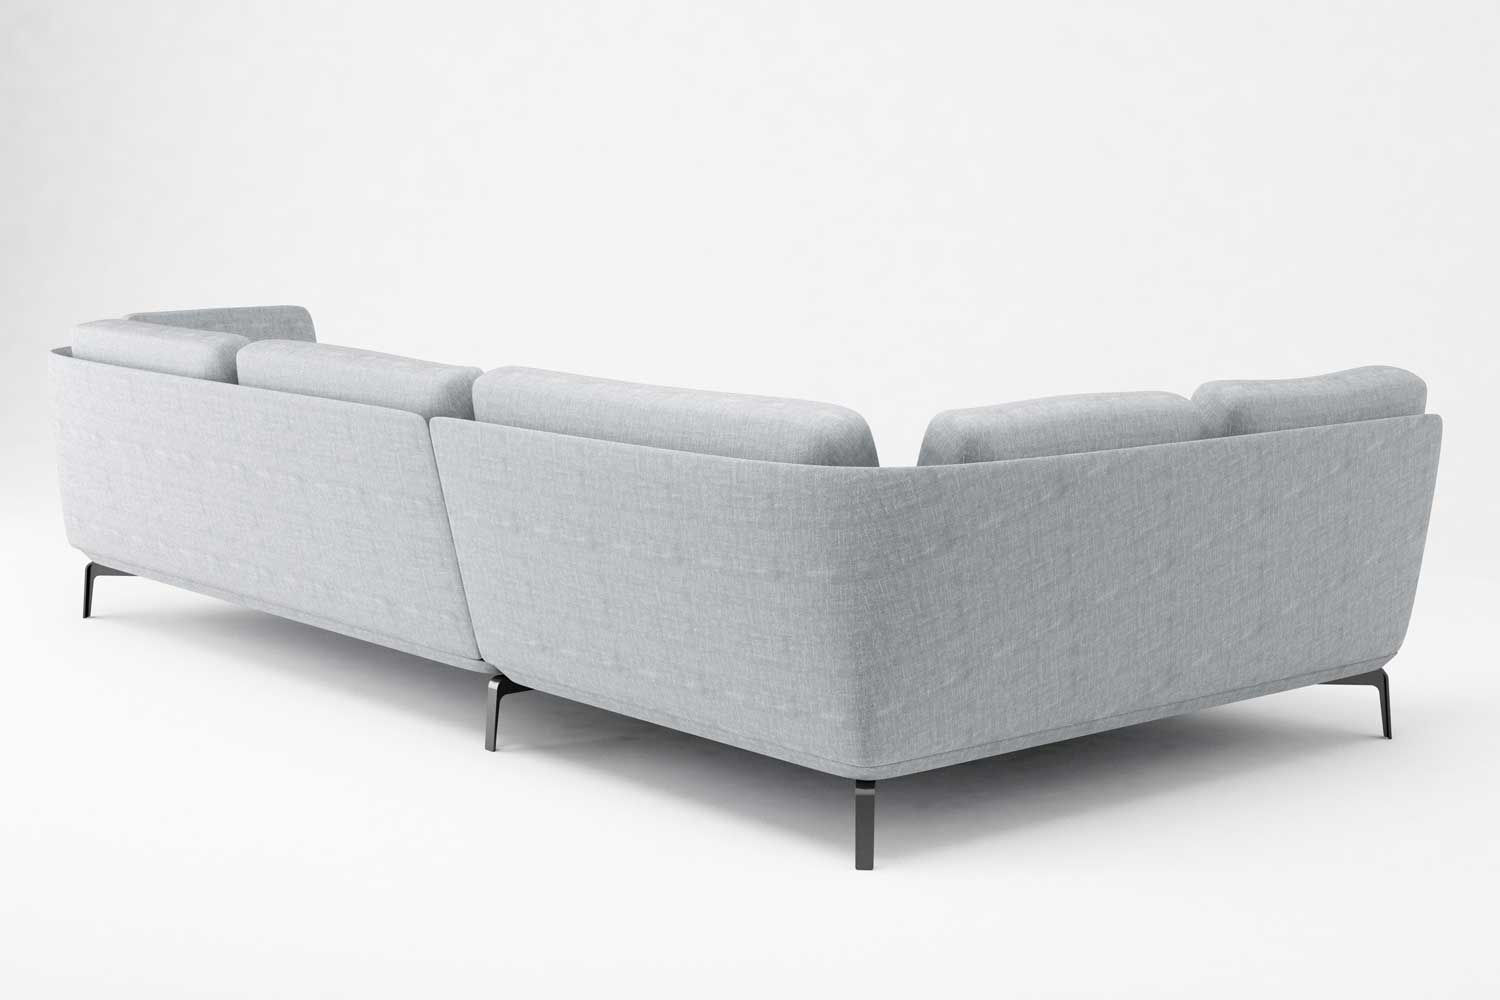 Rolf Benz Sofa Pfister Rondo This Weber Design Unlimited